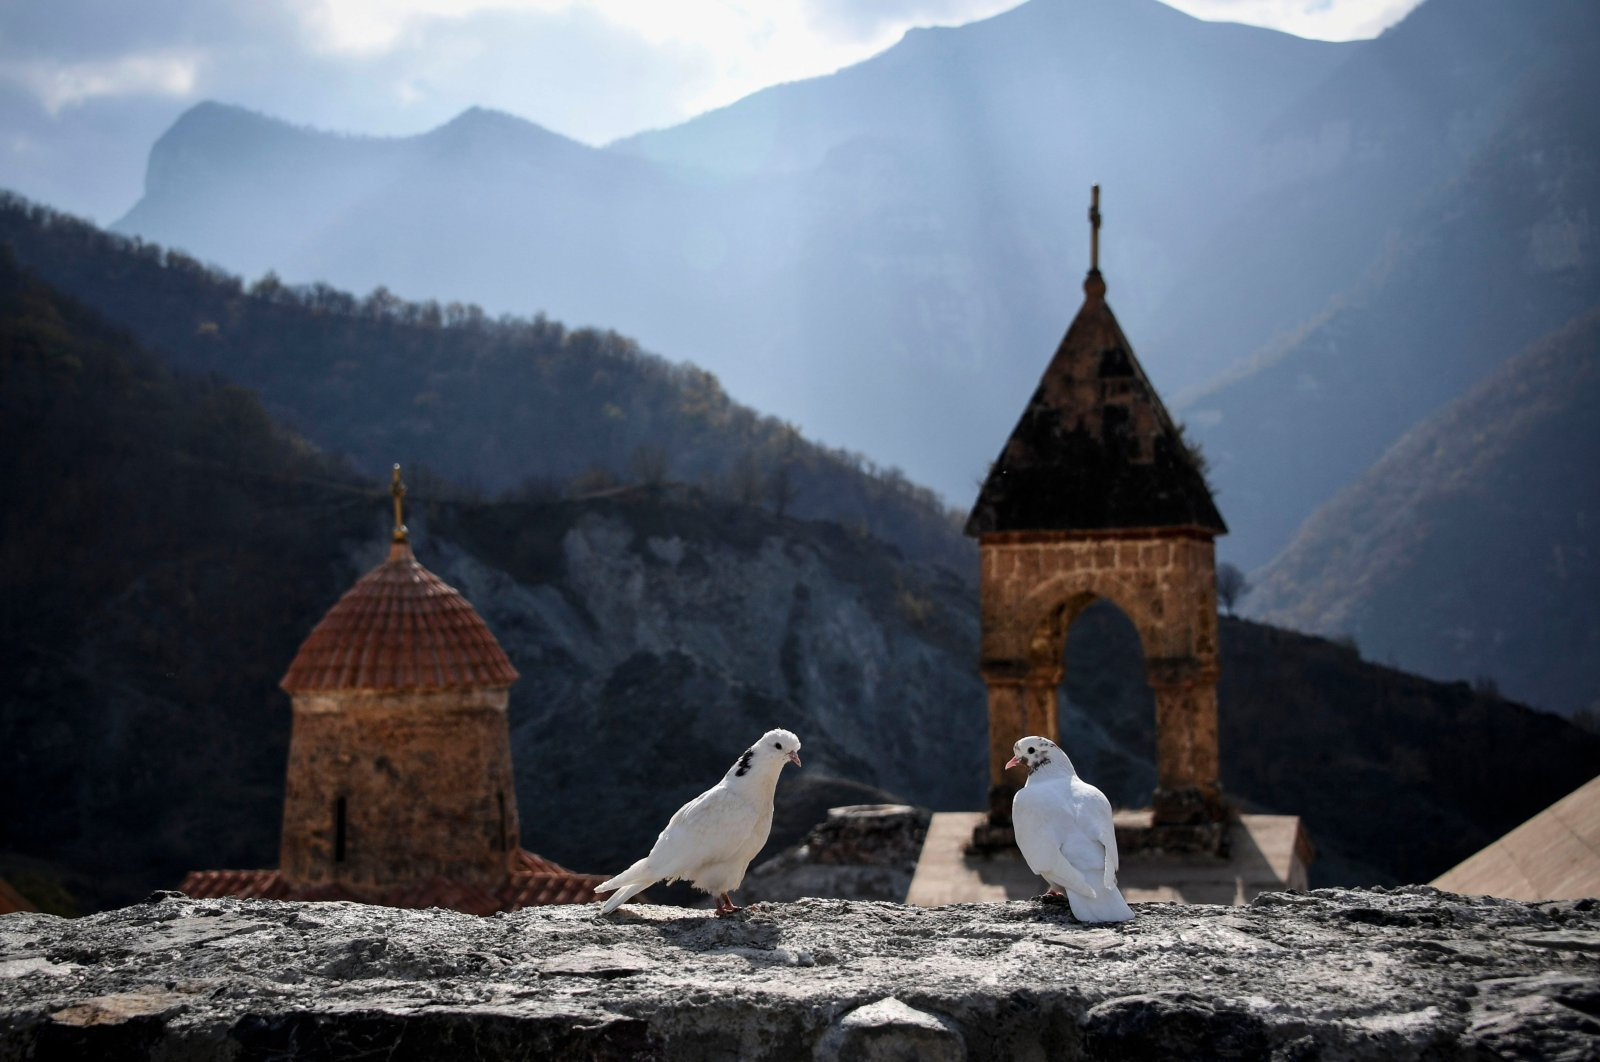 Two white doves stand on a wall of the 12th-13th century Orthodox Dadivank monastery, outside the town of Kalbajar, Azerbaijan, Nov. 12, 2020. (AFP Photo)